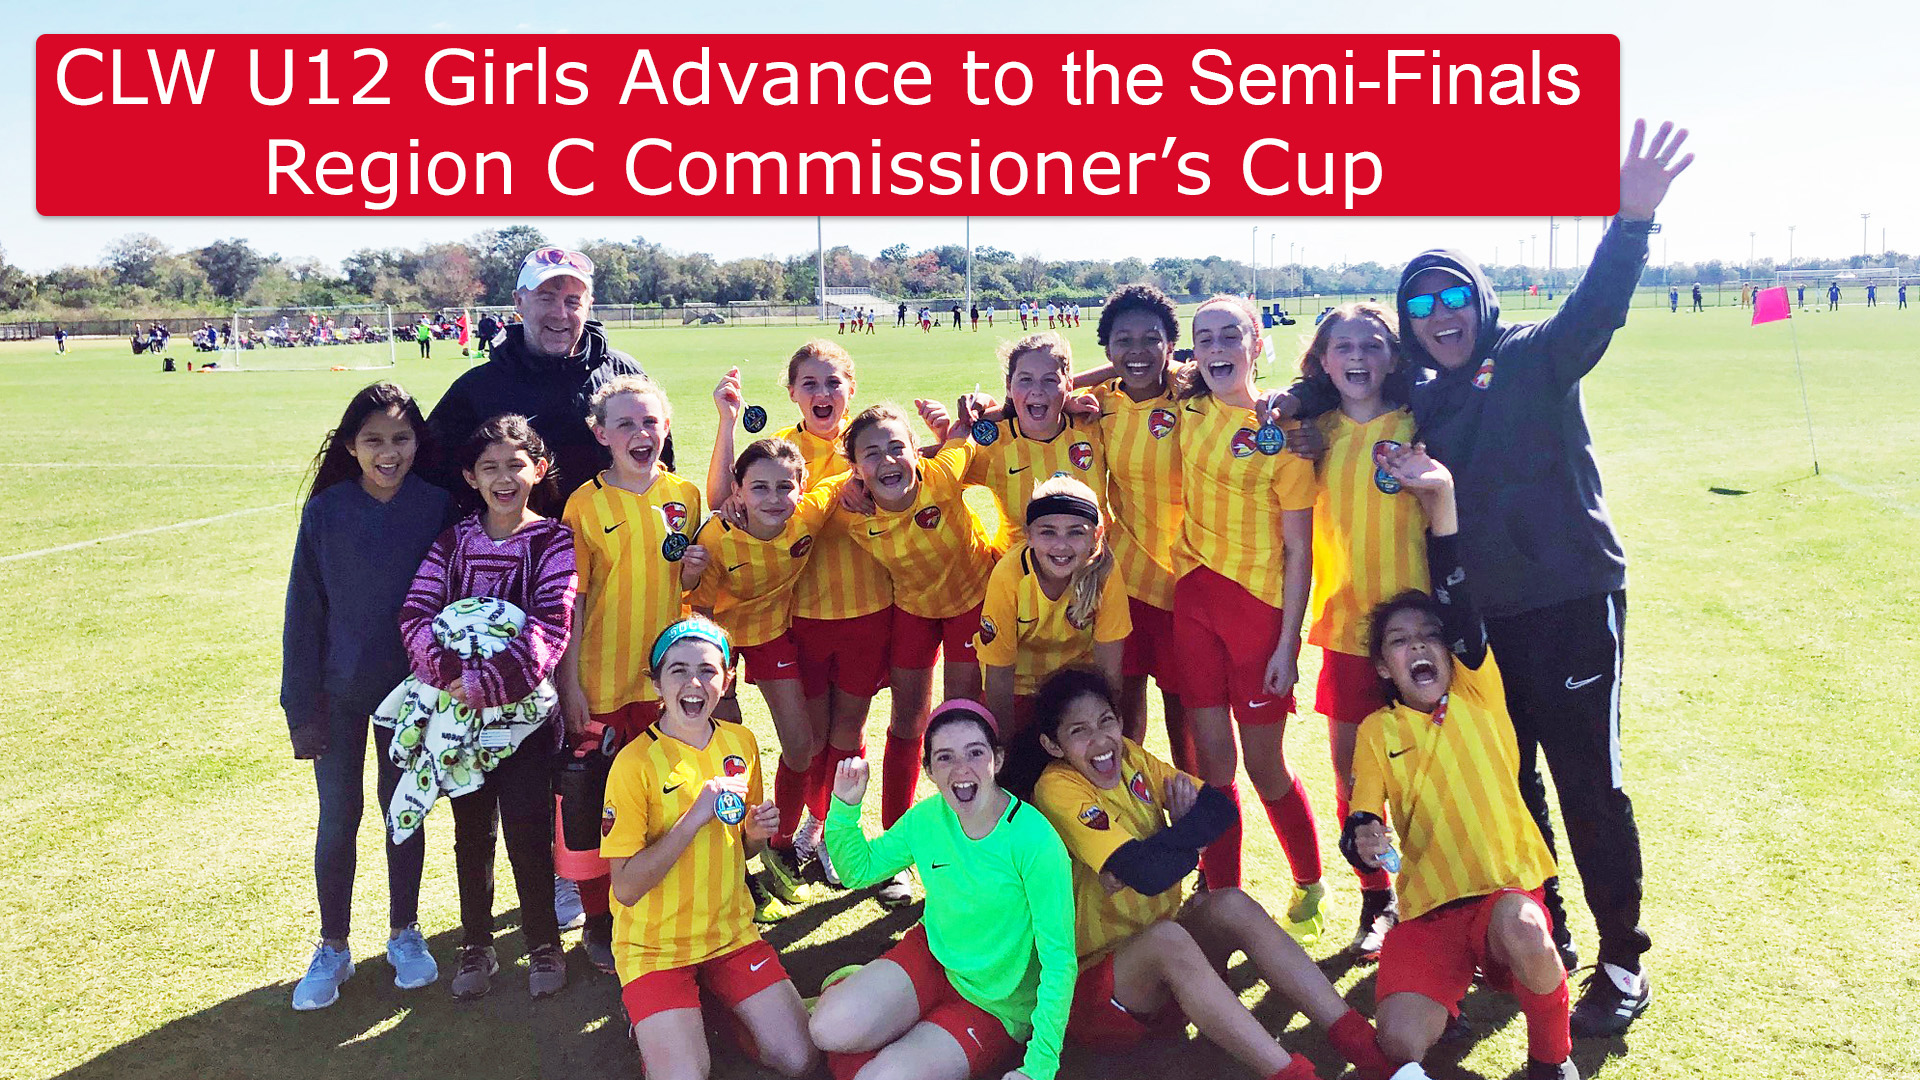 CLW U12g Advance in Commissioner's Cup